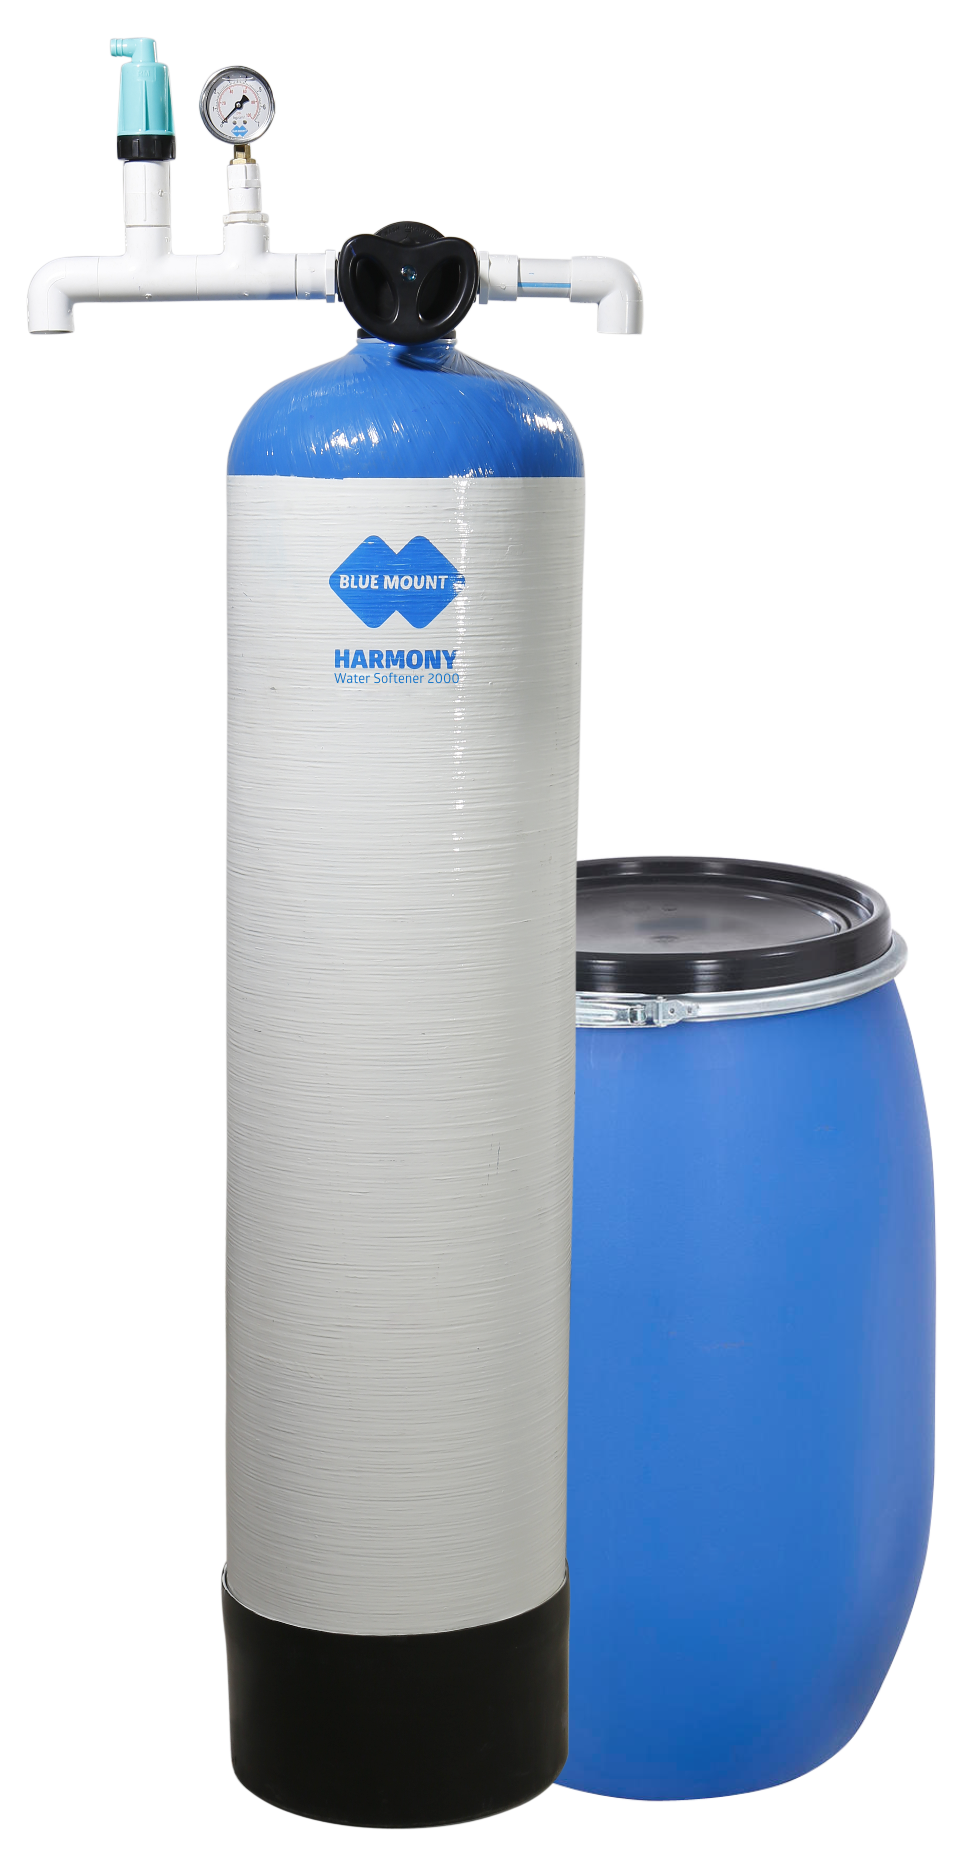 Blue Mount Harmony water softener 2000